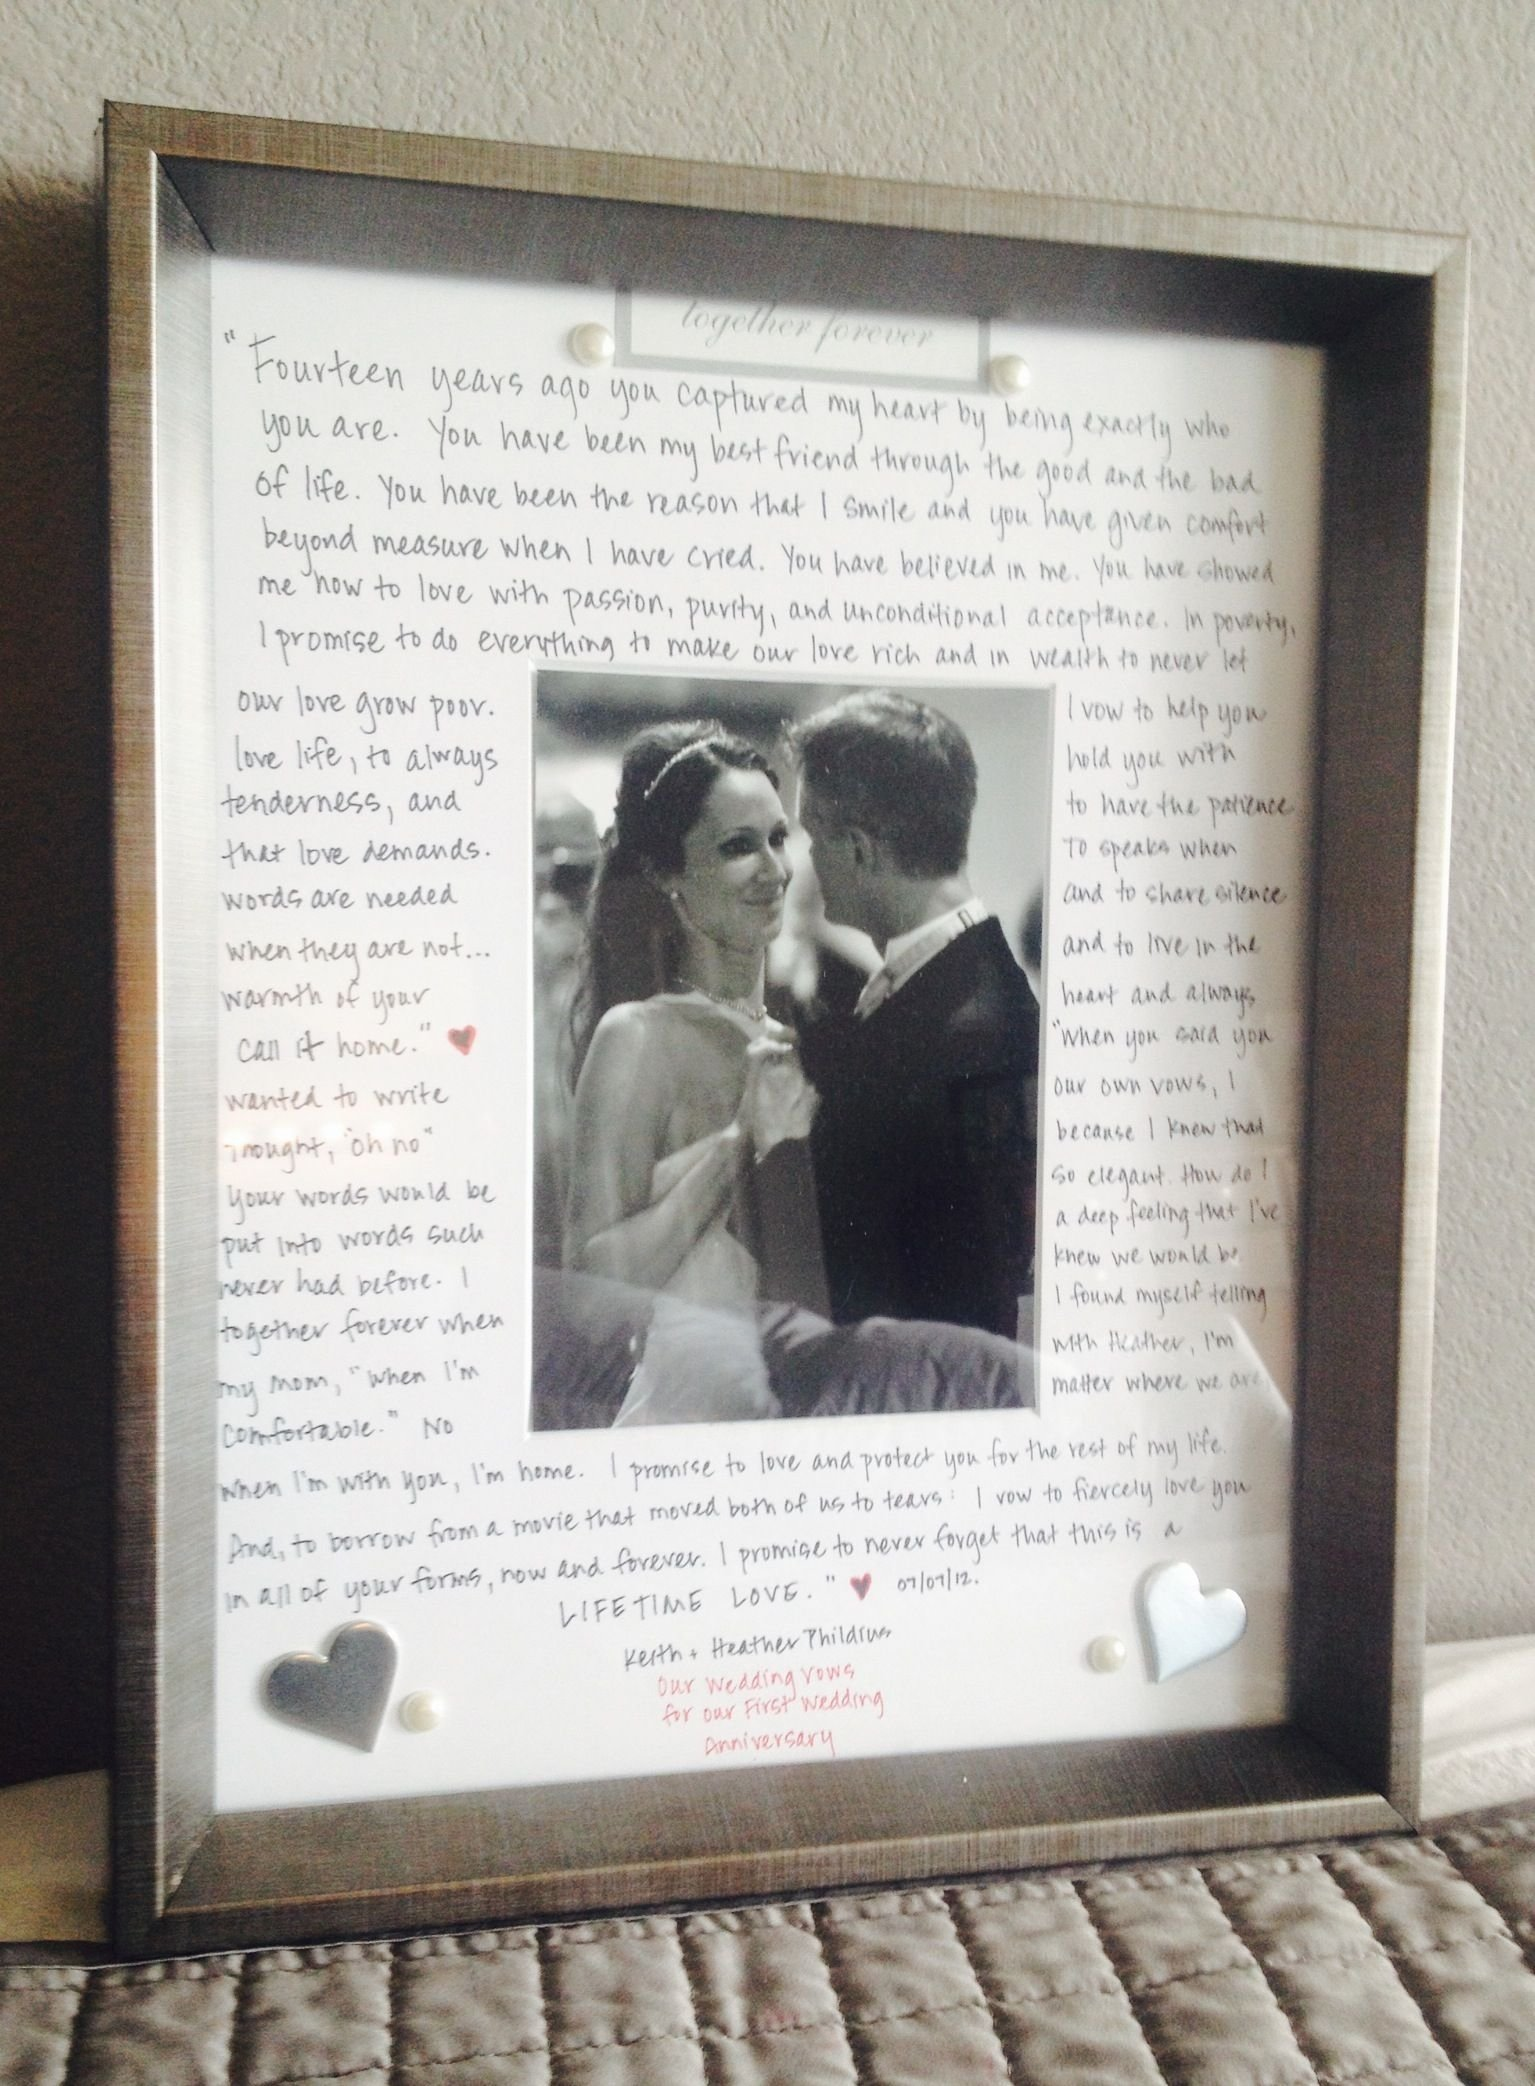 10 Awesome Paper Anniversary Gift Ideas For Him first wedding anniversary gift to my husband our vows written out 8 2020